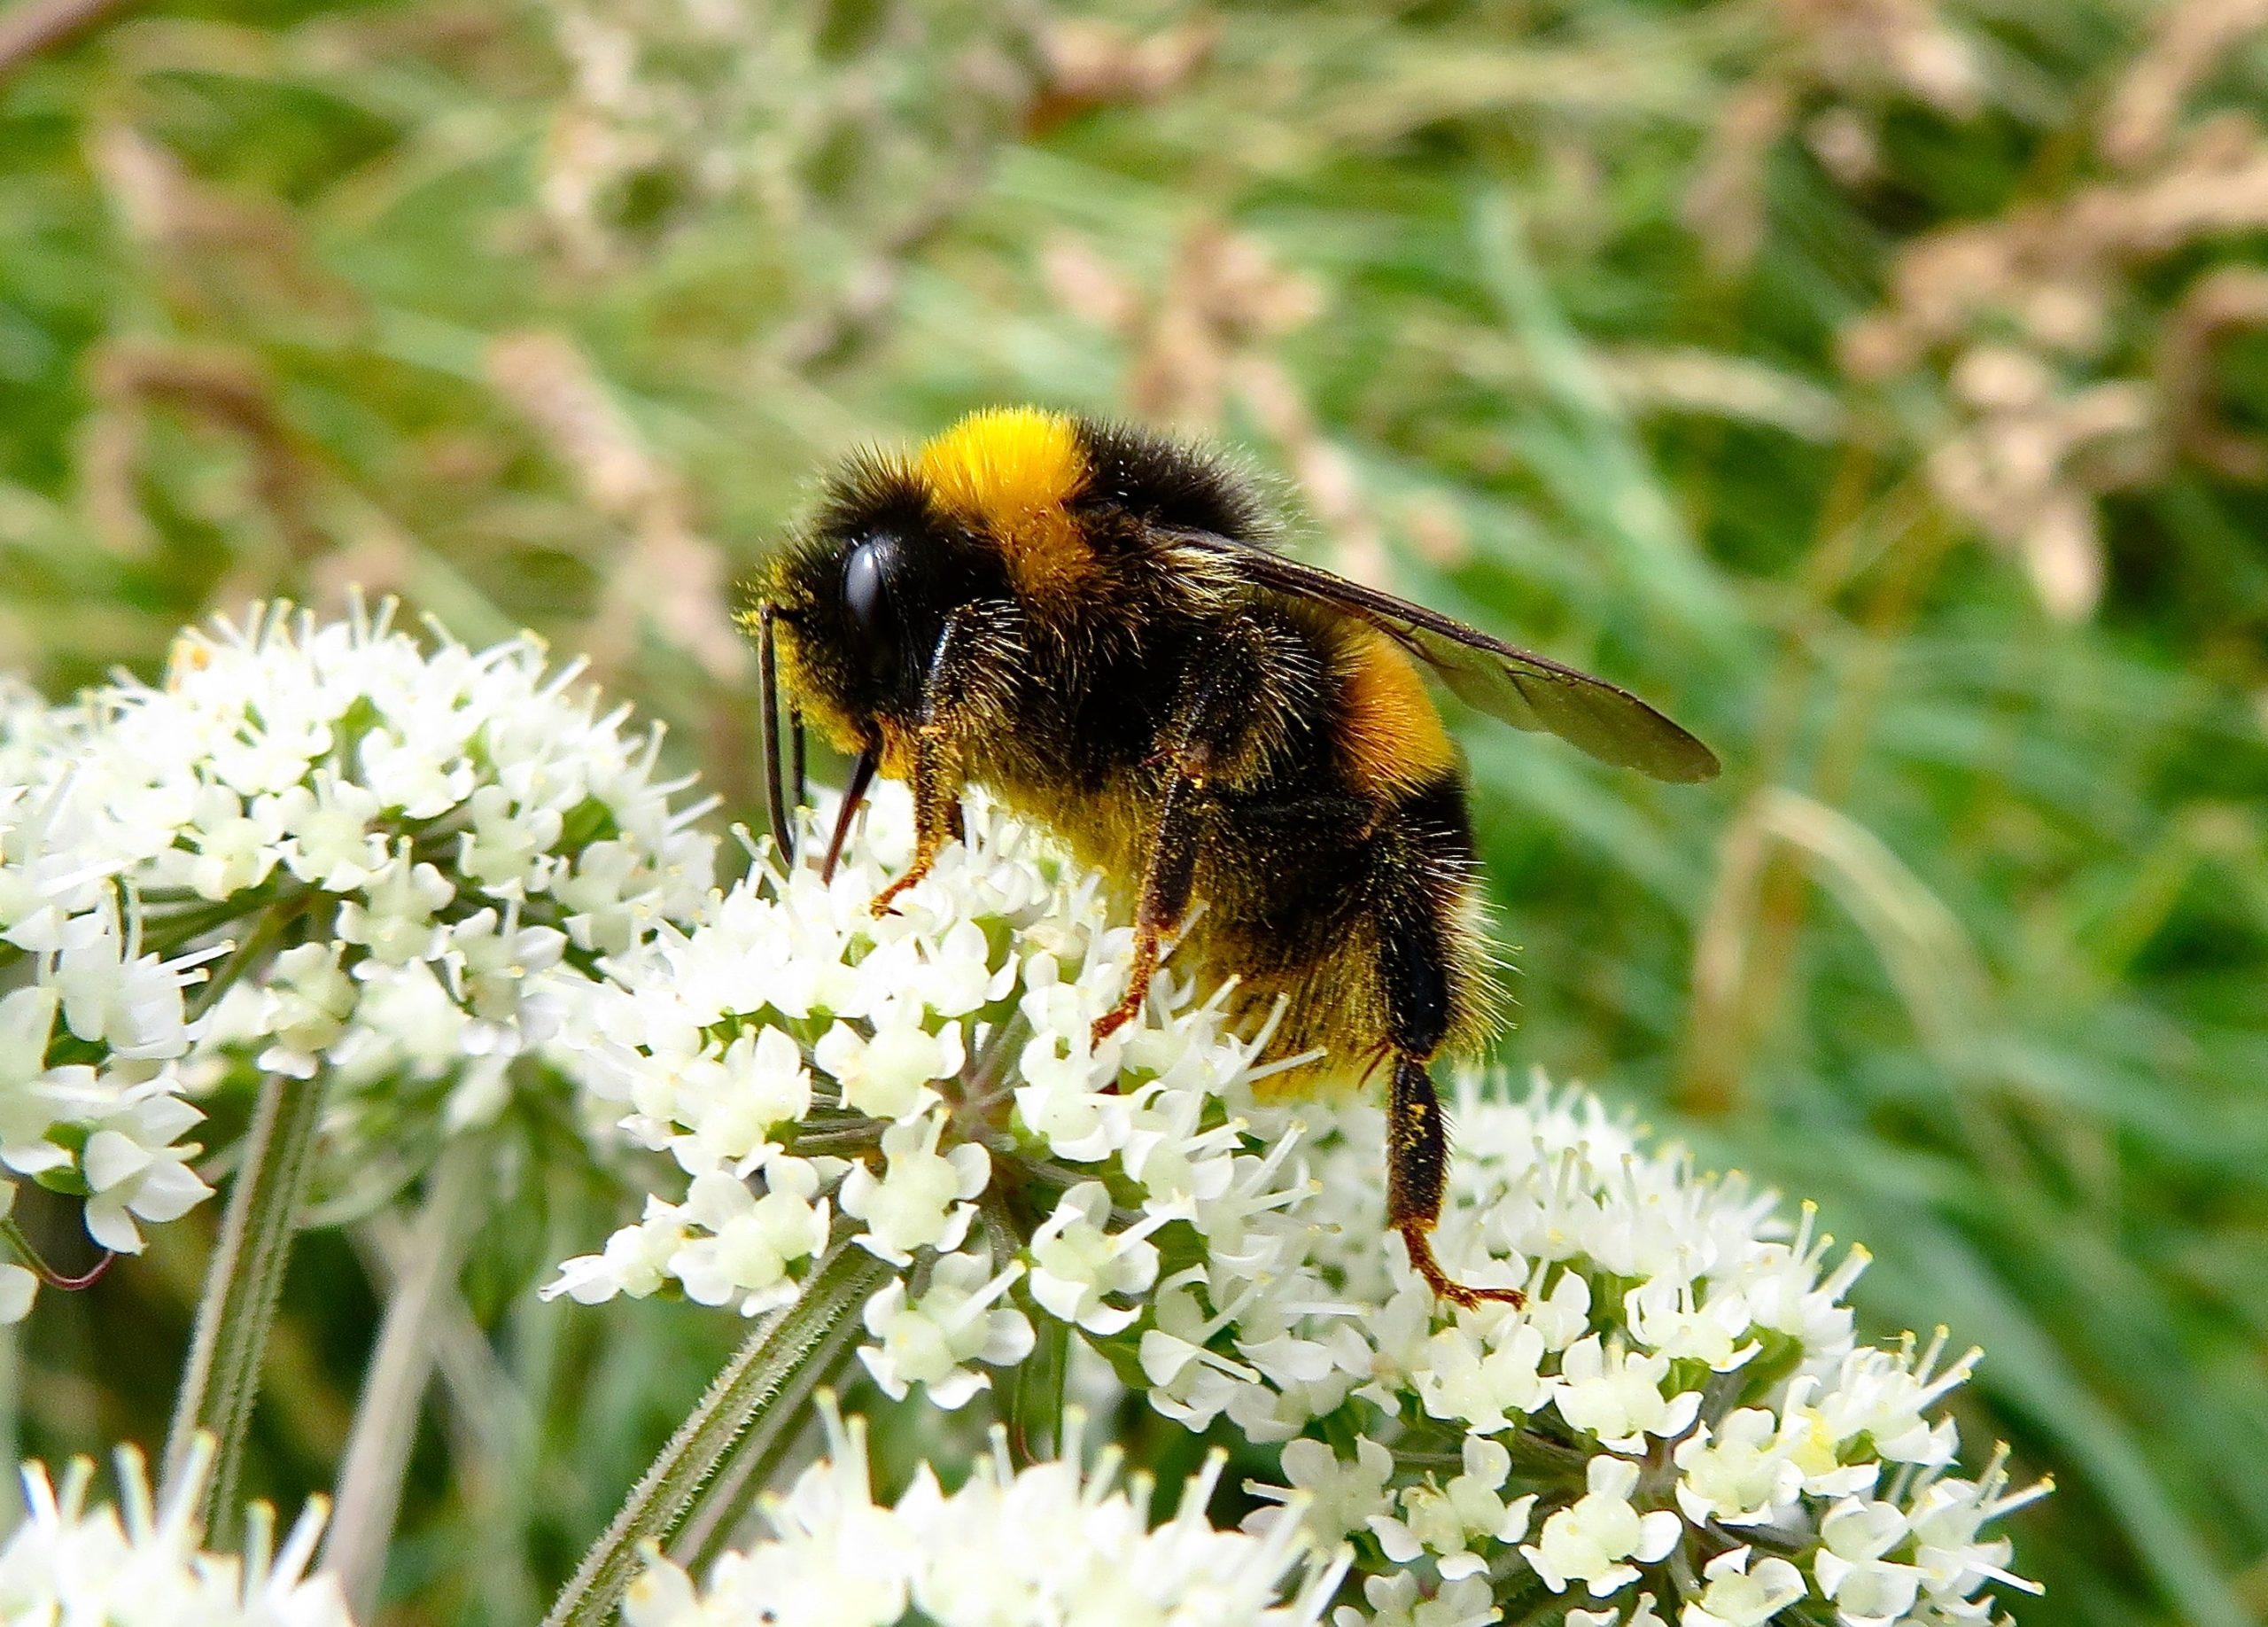 Image of bumble bee pollinating plant